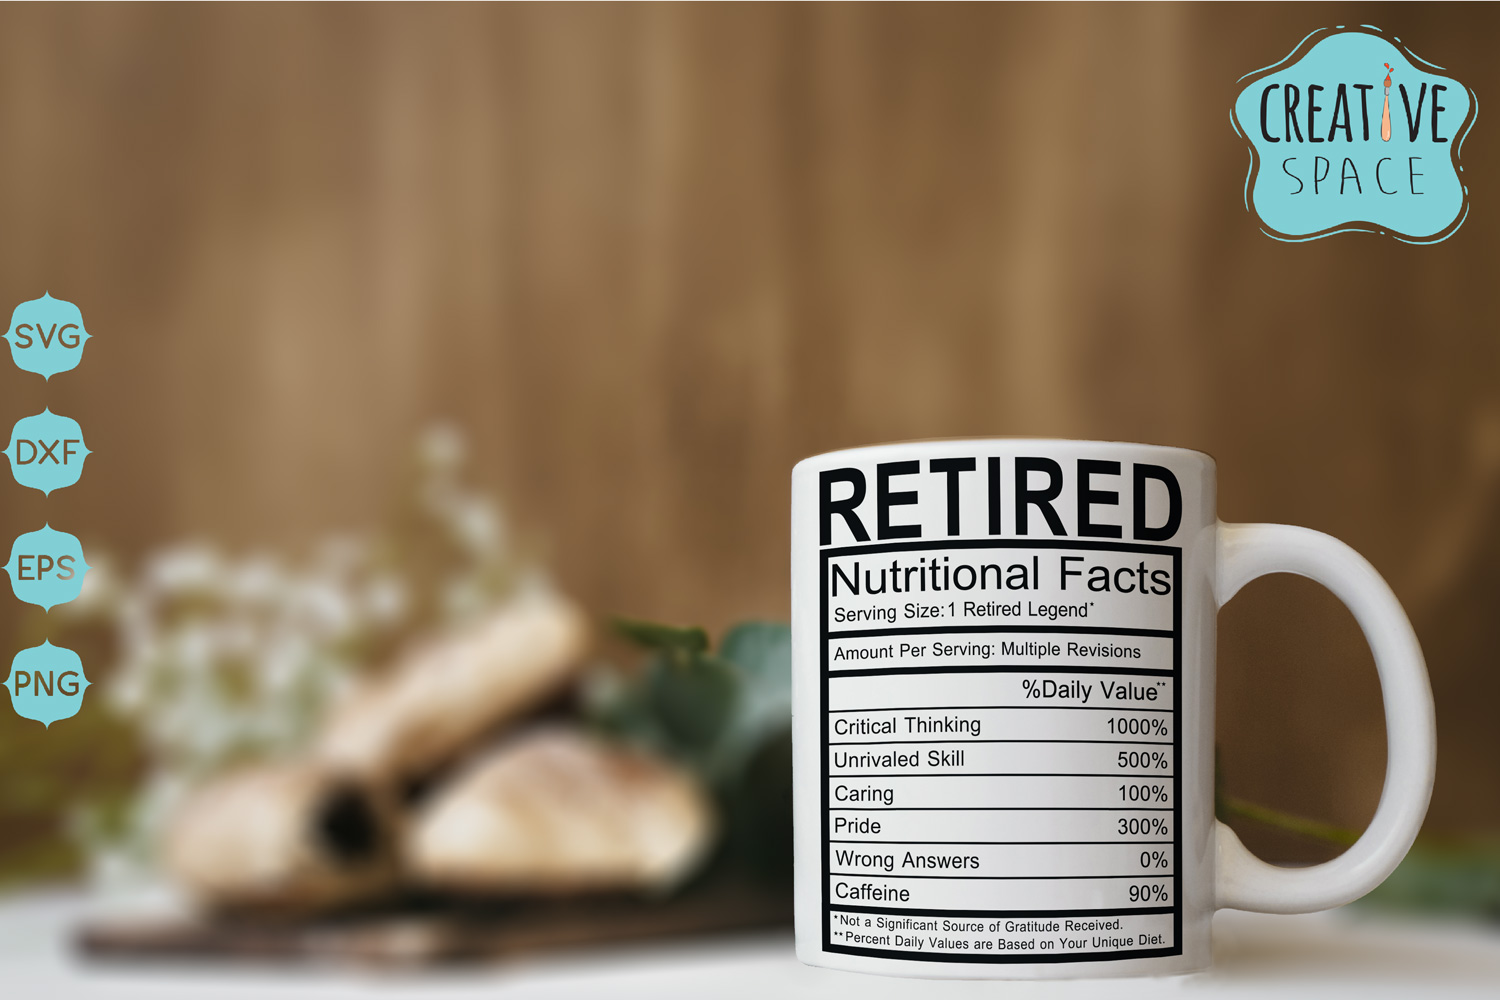 Retired Nutritional Facts SVG File